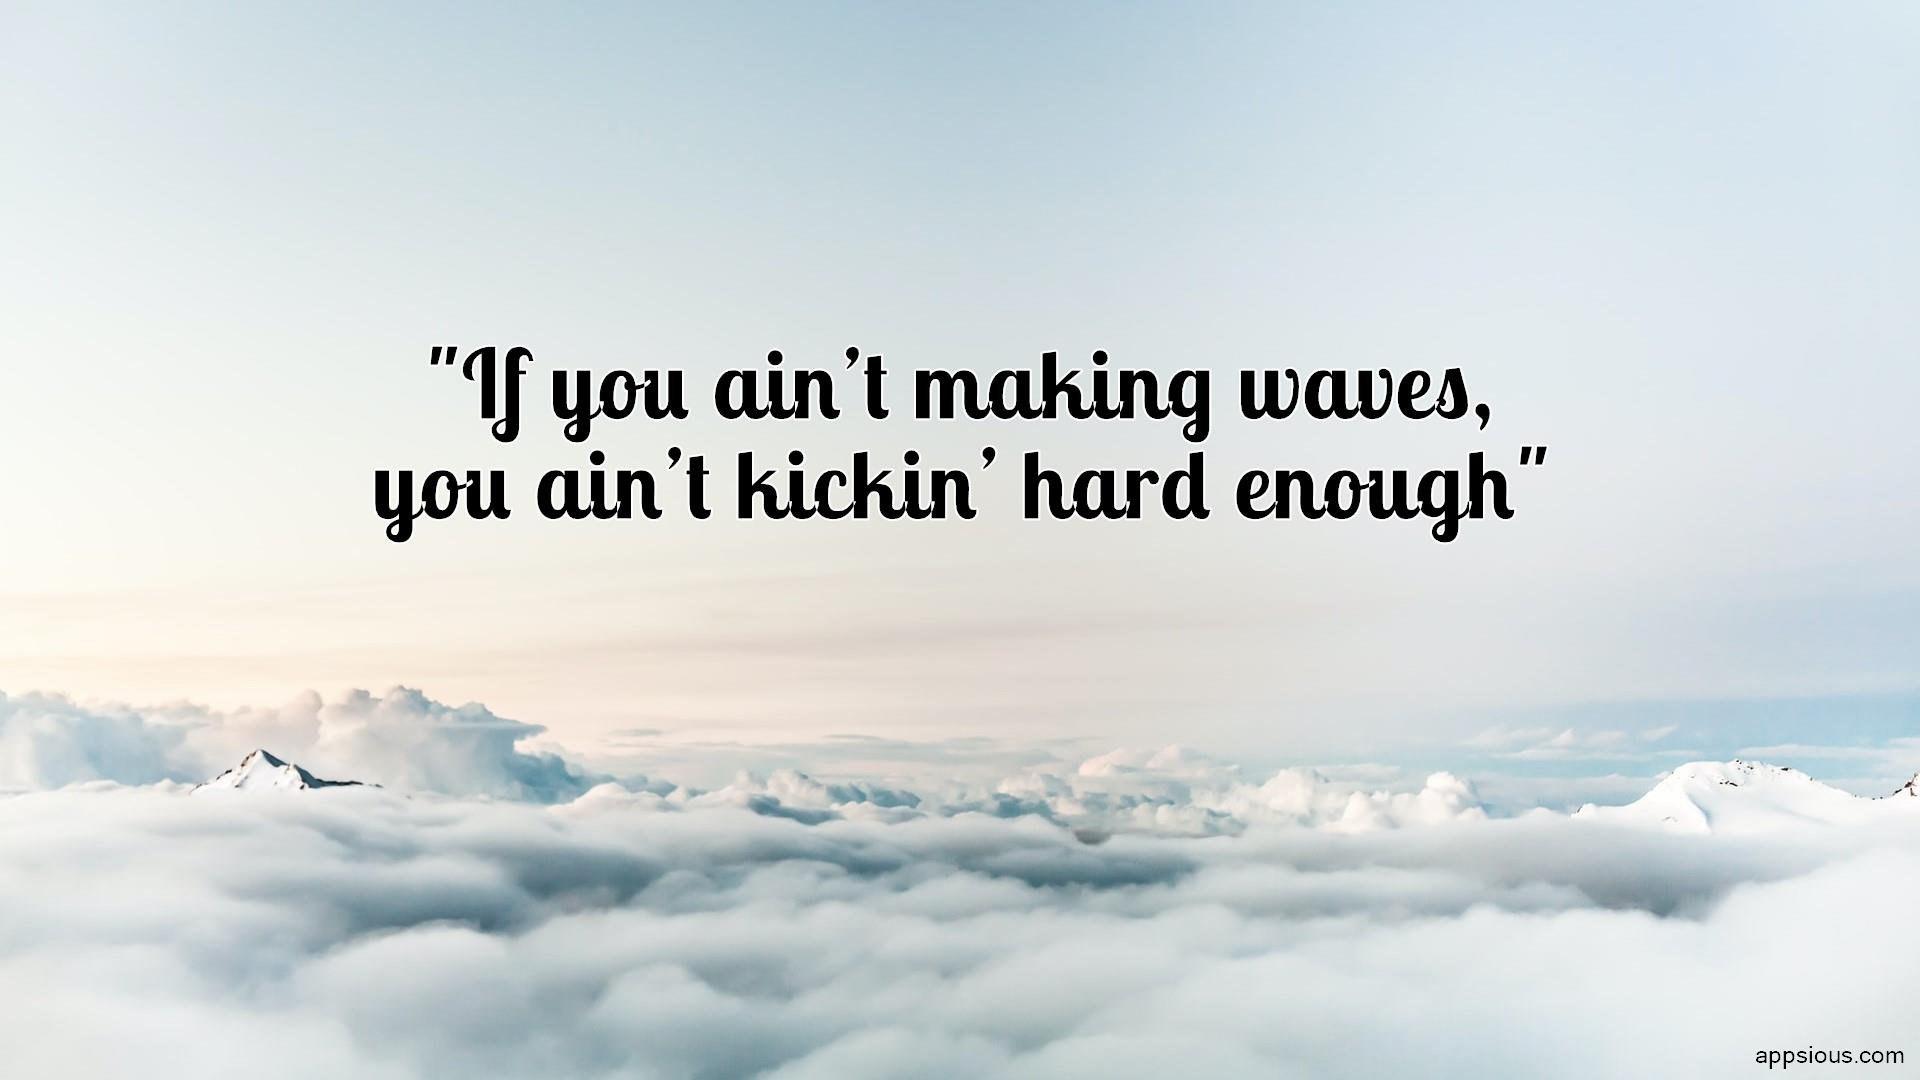 If you ain't making waves, you ain't kickin' hard enough